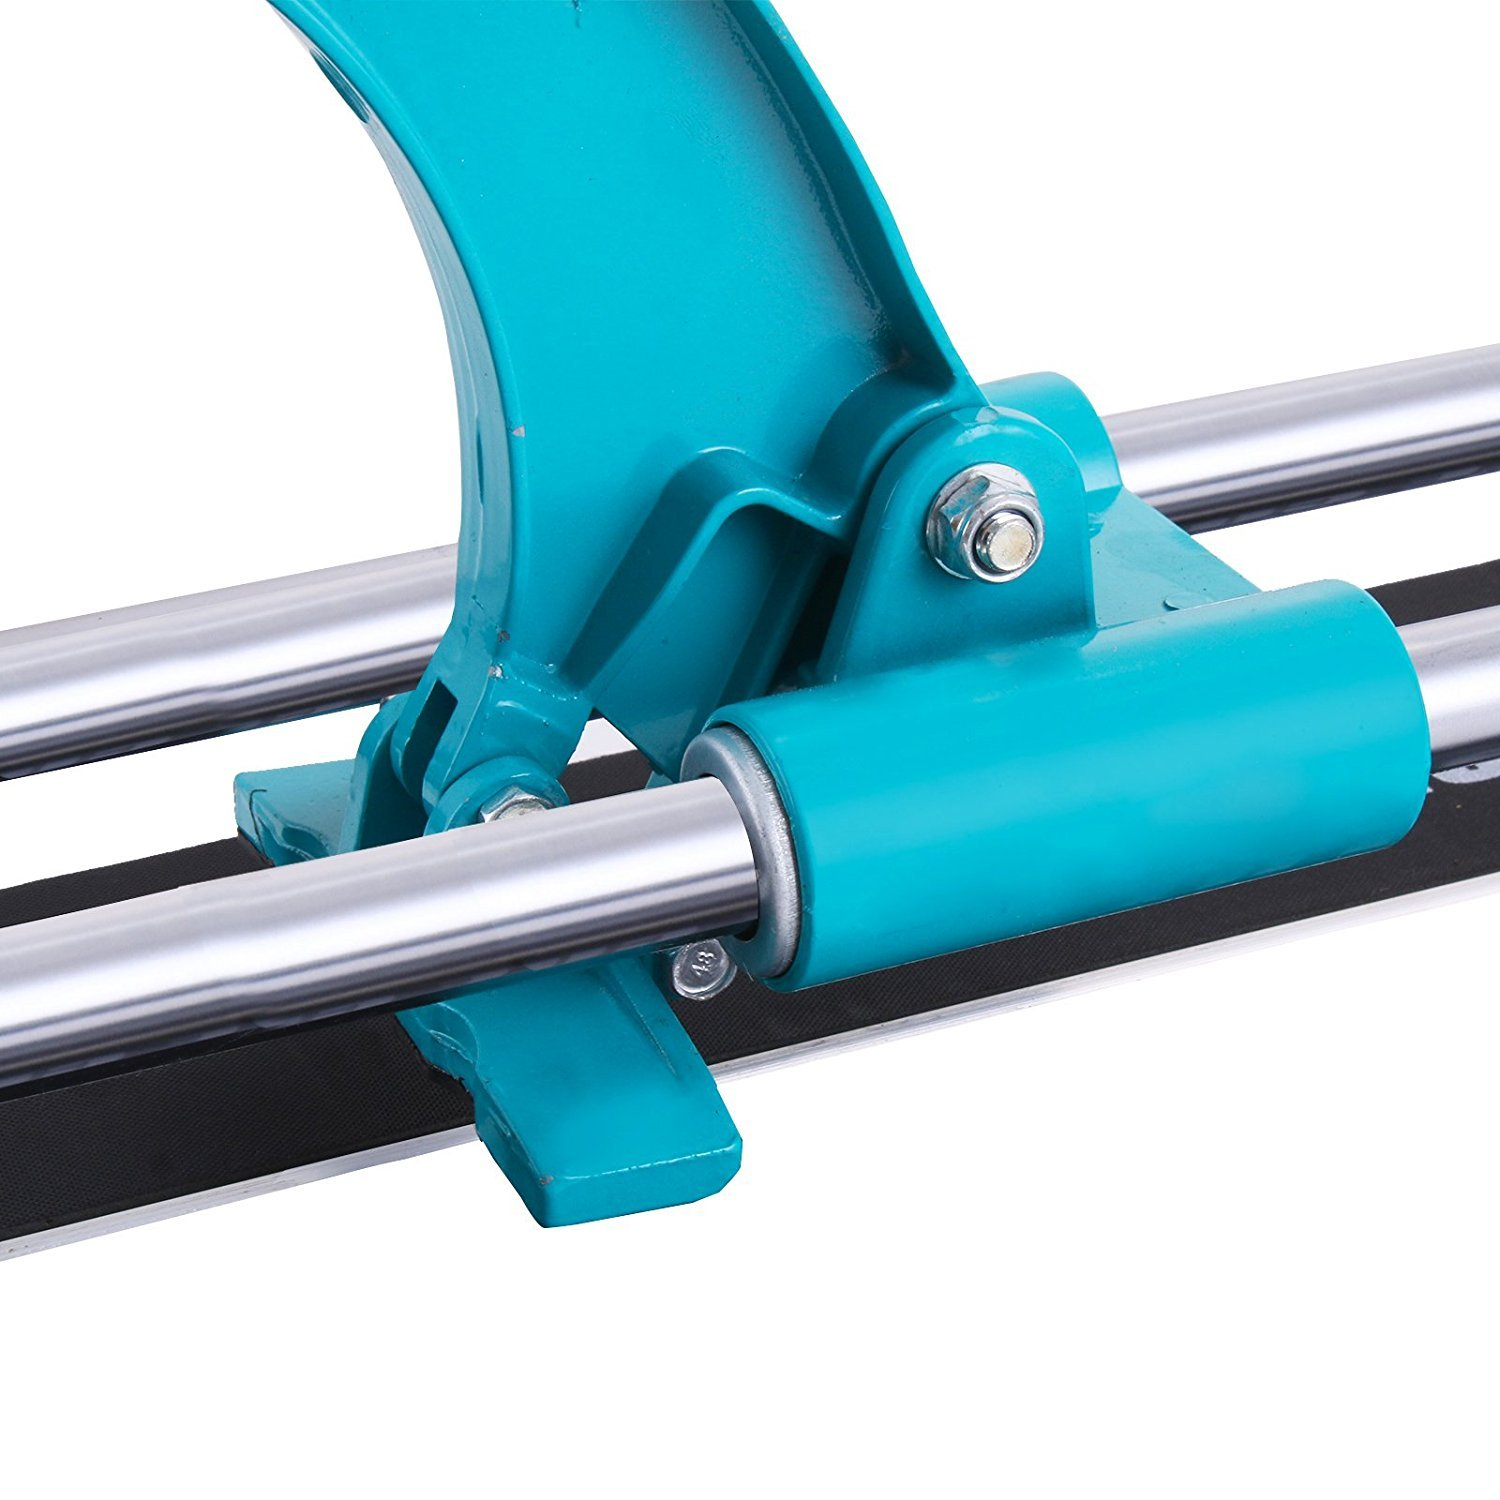 TOTOOL 40 Inch Manual Tile Cutter Professional Ceramic Tile Cutter with Solid Steel Rail and Adjustable Laser Guide Floor Tile Cutter for Porcelain and Ceramic Tiles (40 Inch) by TOTOOL (Image #8)